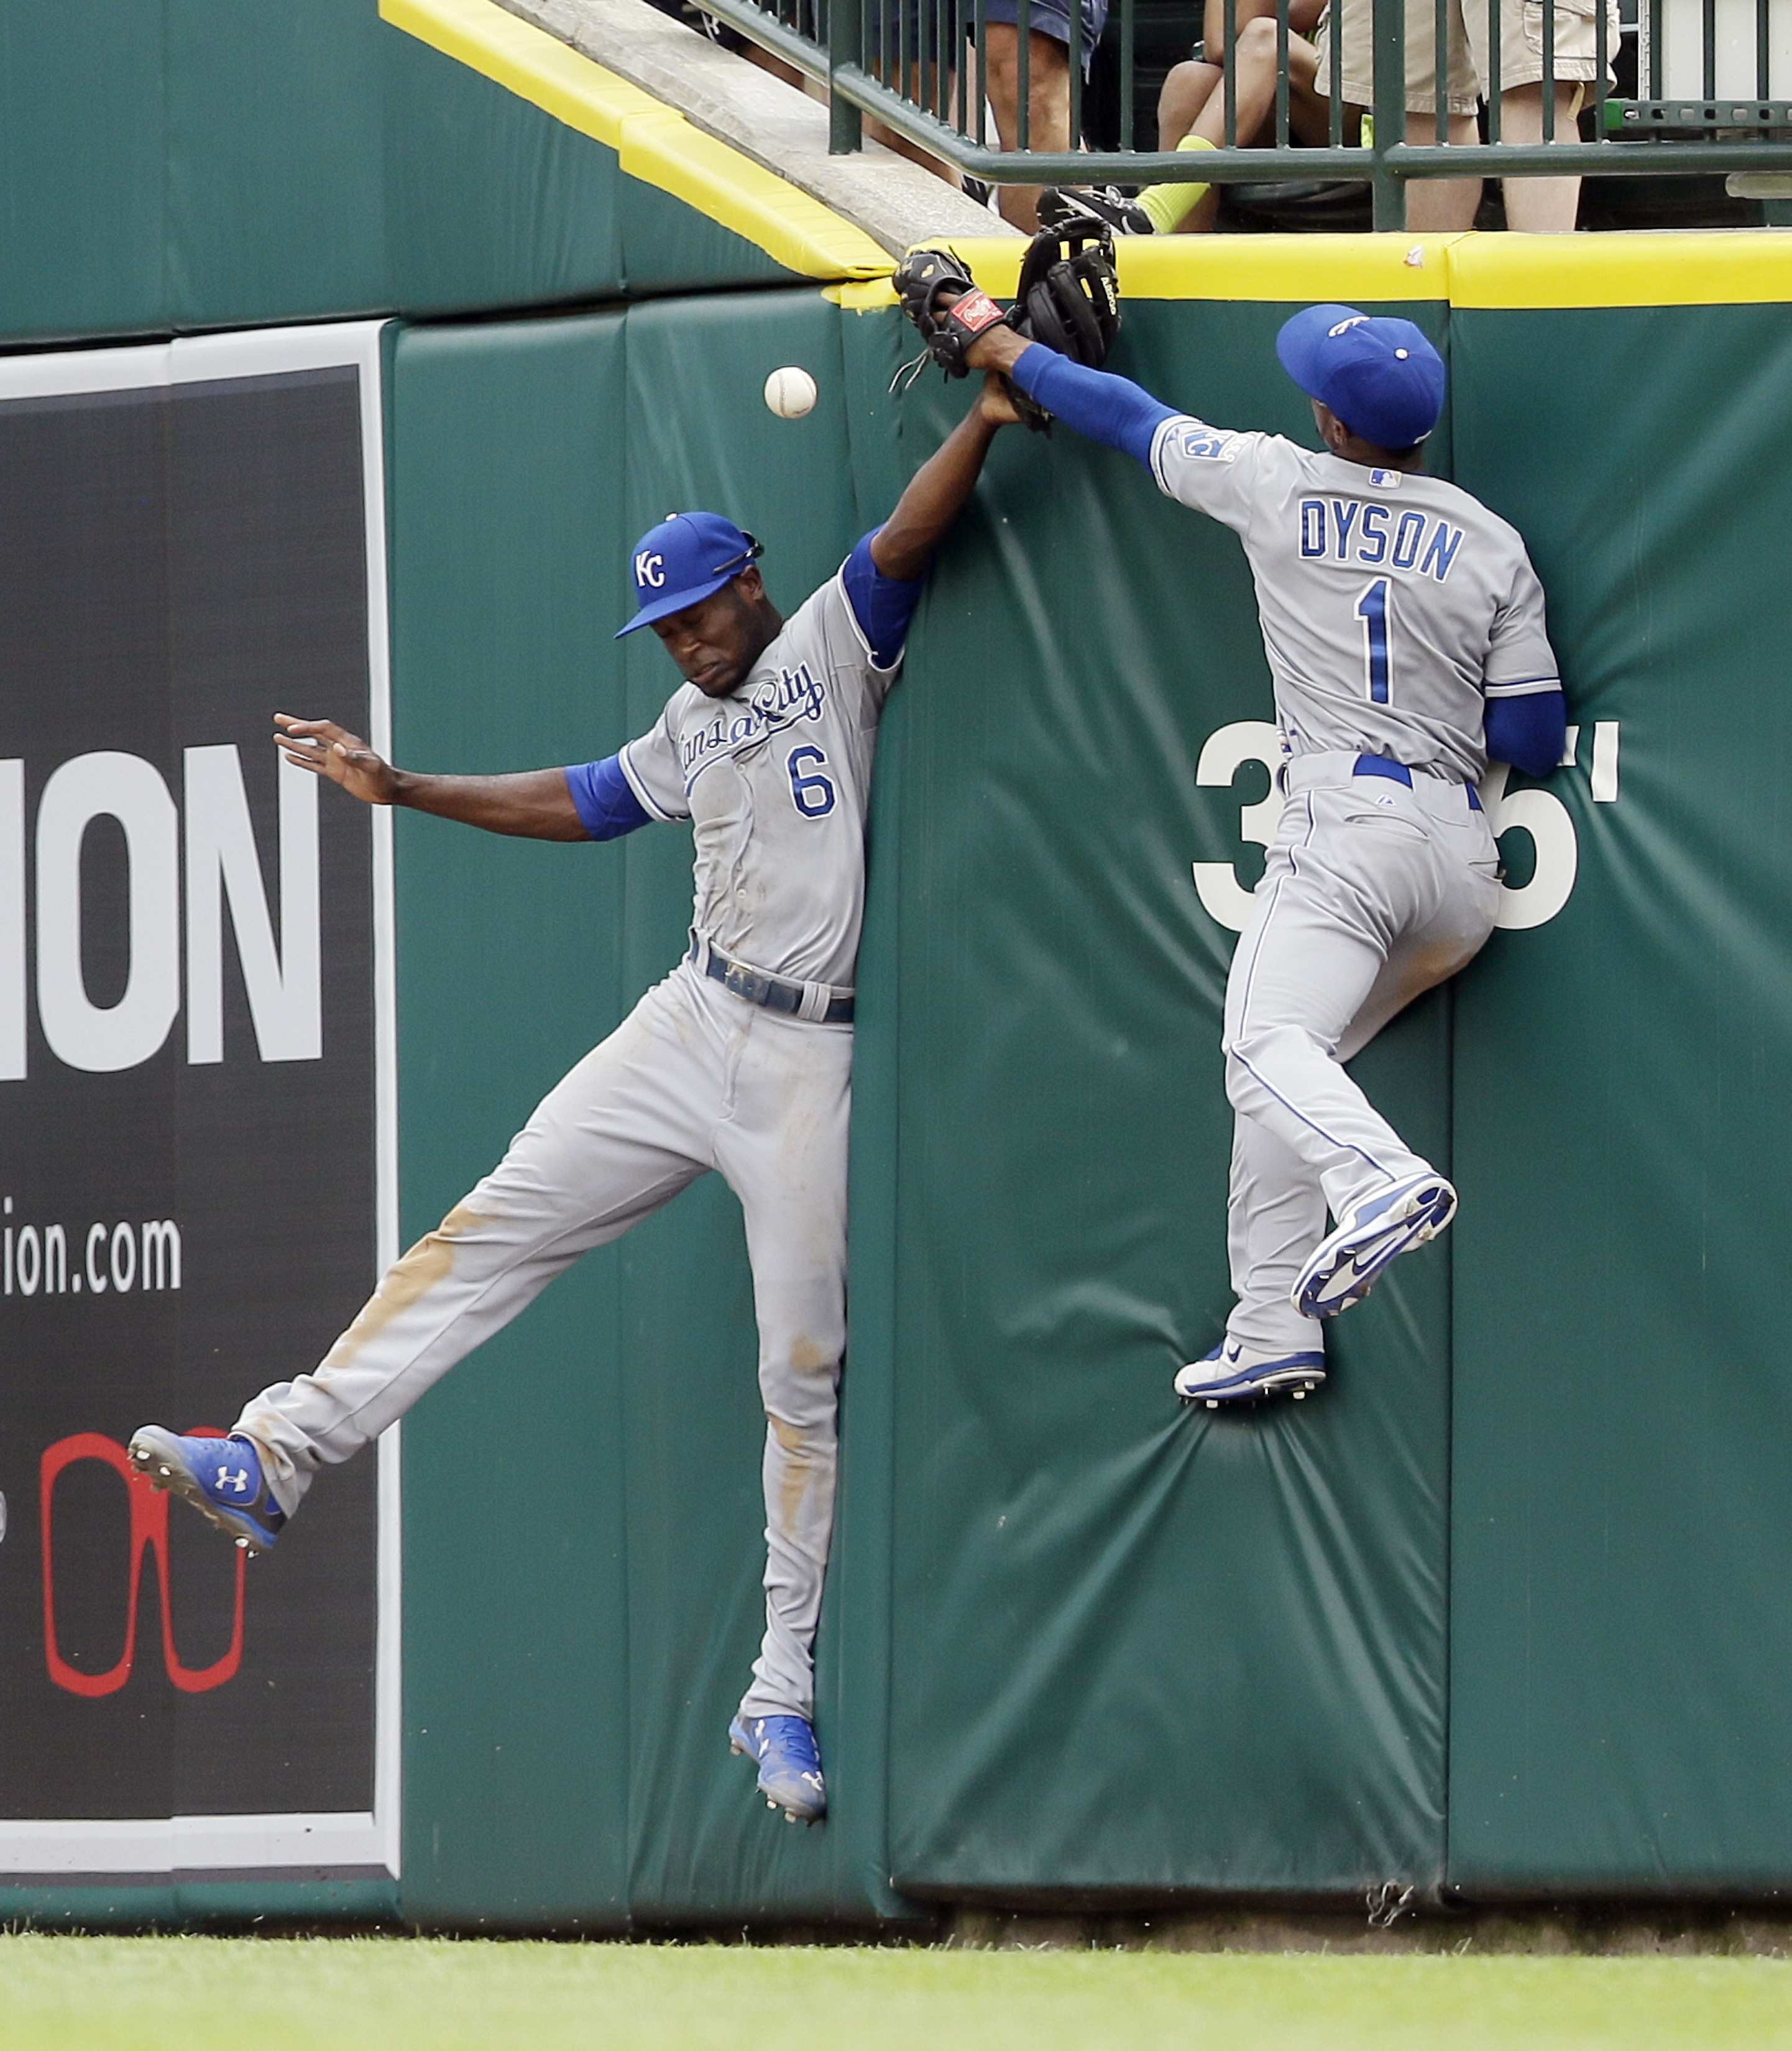 Kansas City Royals center fielder Lorenzo Cain (6) and right fielder Jarrod Dyson (1) misplay the triple hit by Detroit Tigers' Nick Castellanos during the sixth inning of a baseball game, Saturday, May 9, 2015, in Detroit. (AP Photo/Carlos Osorio)